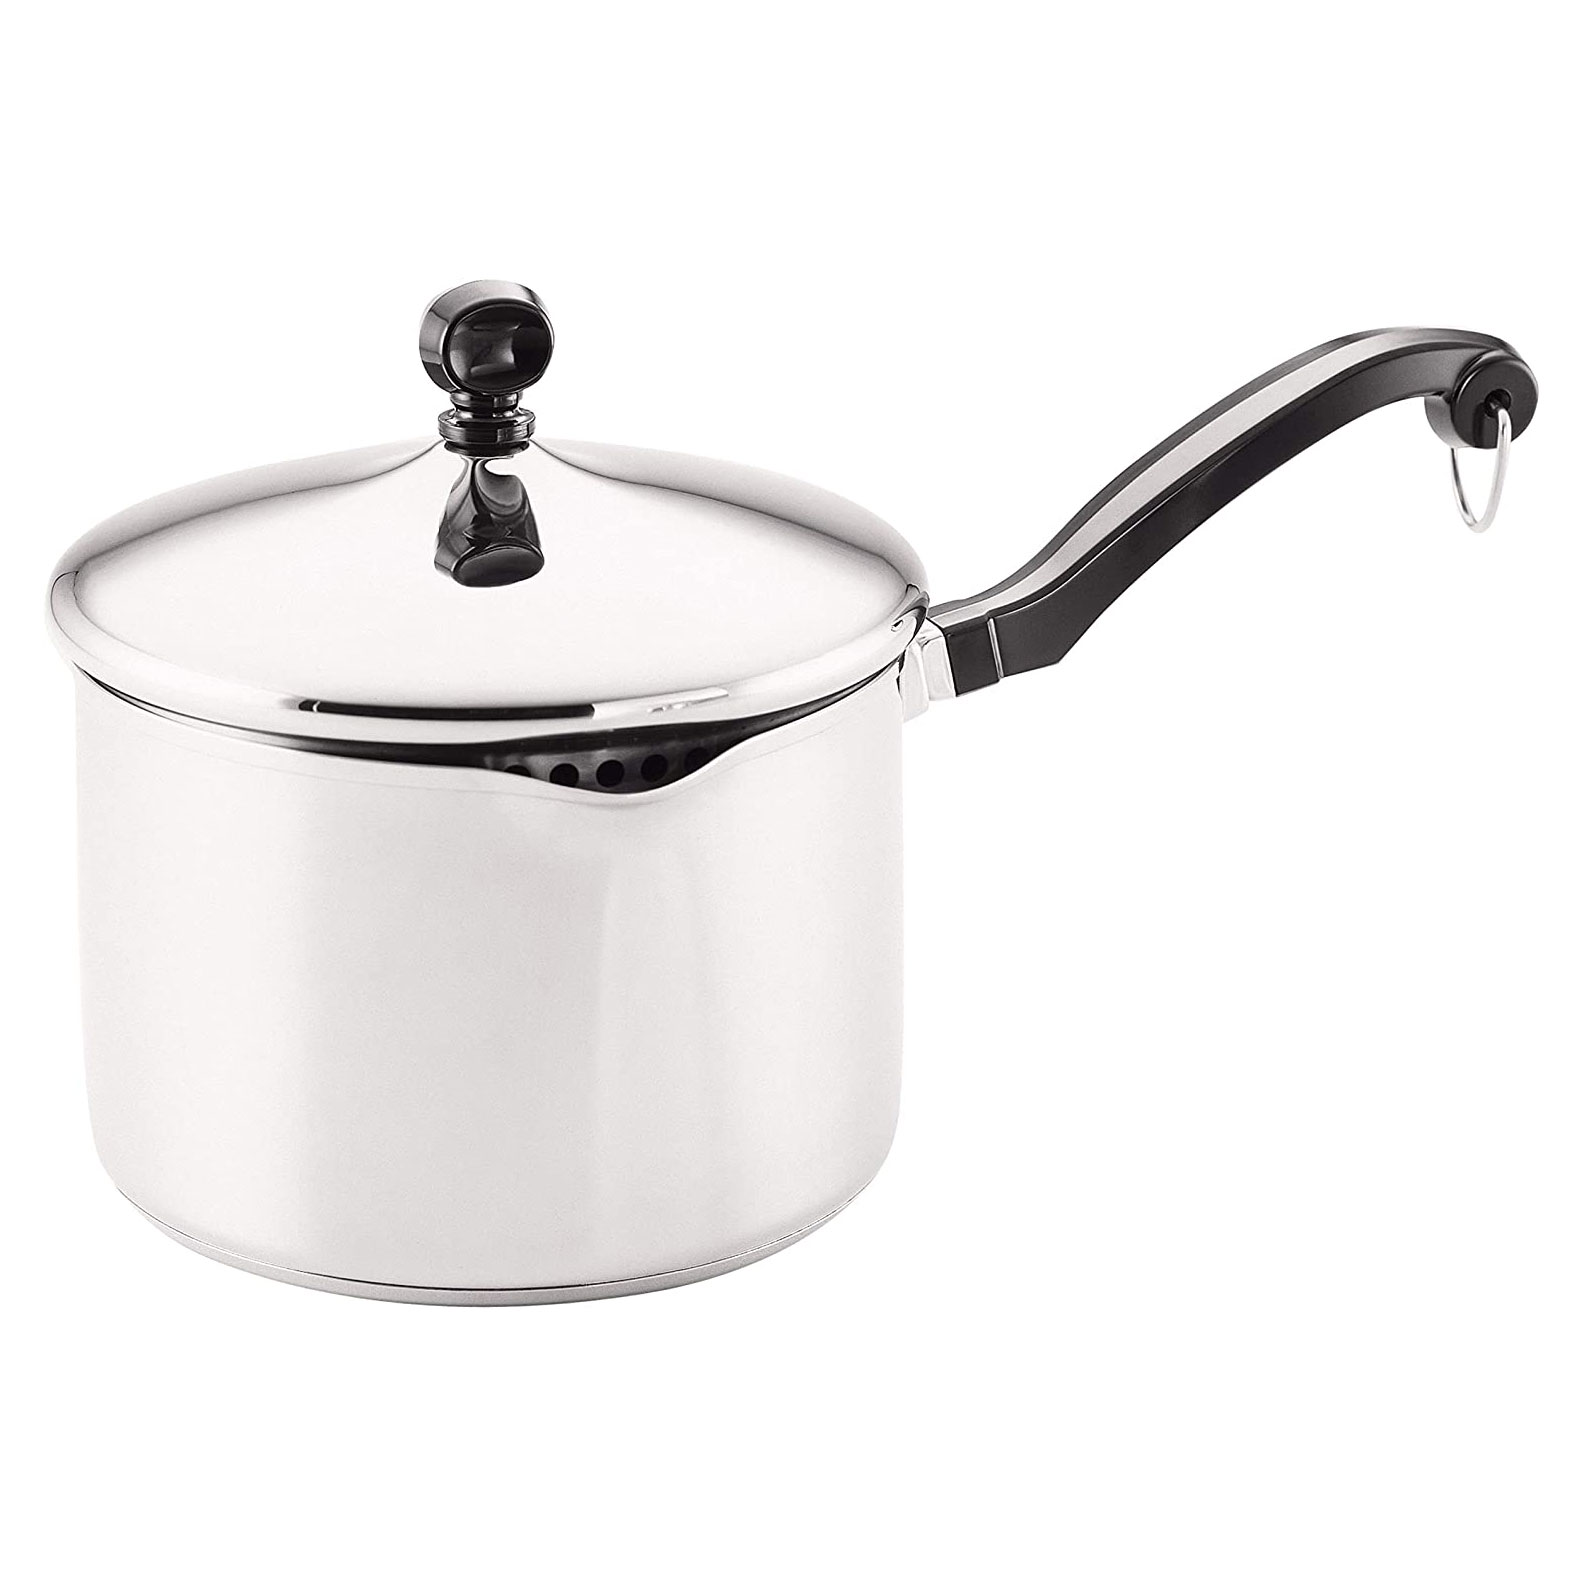 stainless steel covered saucepan with black handle